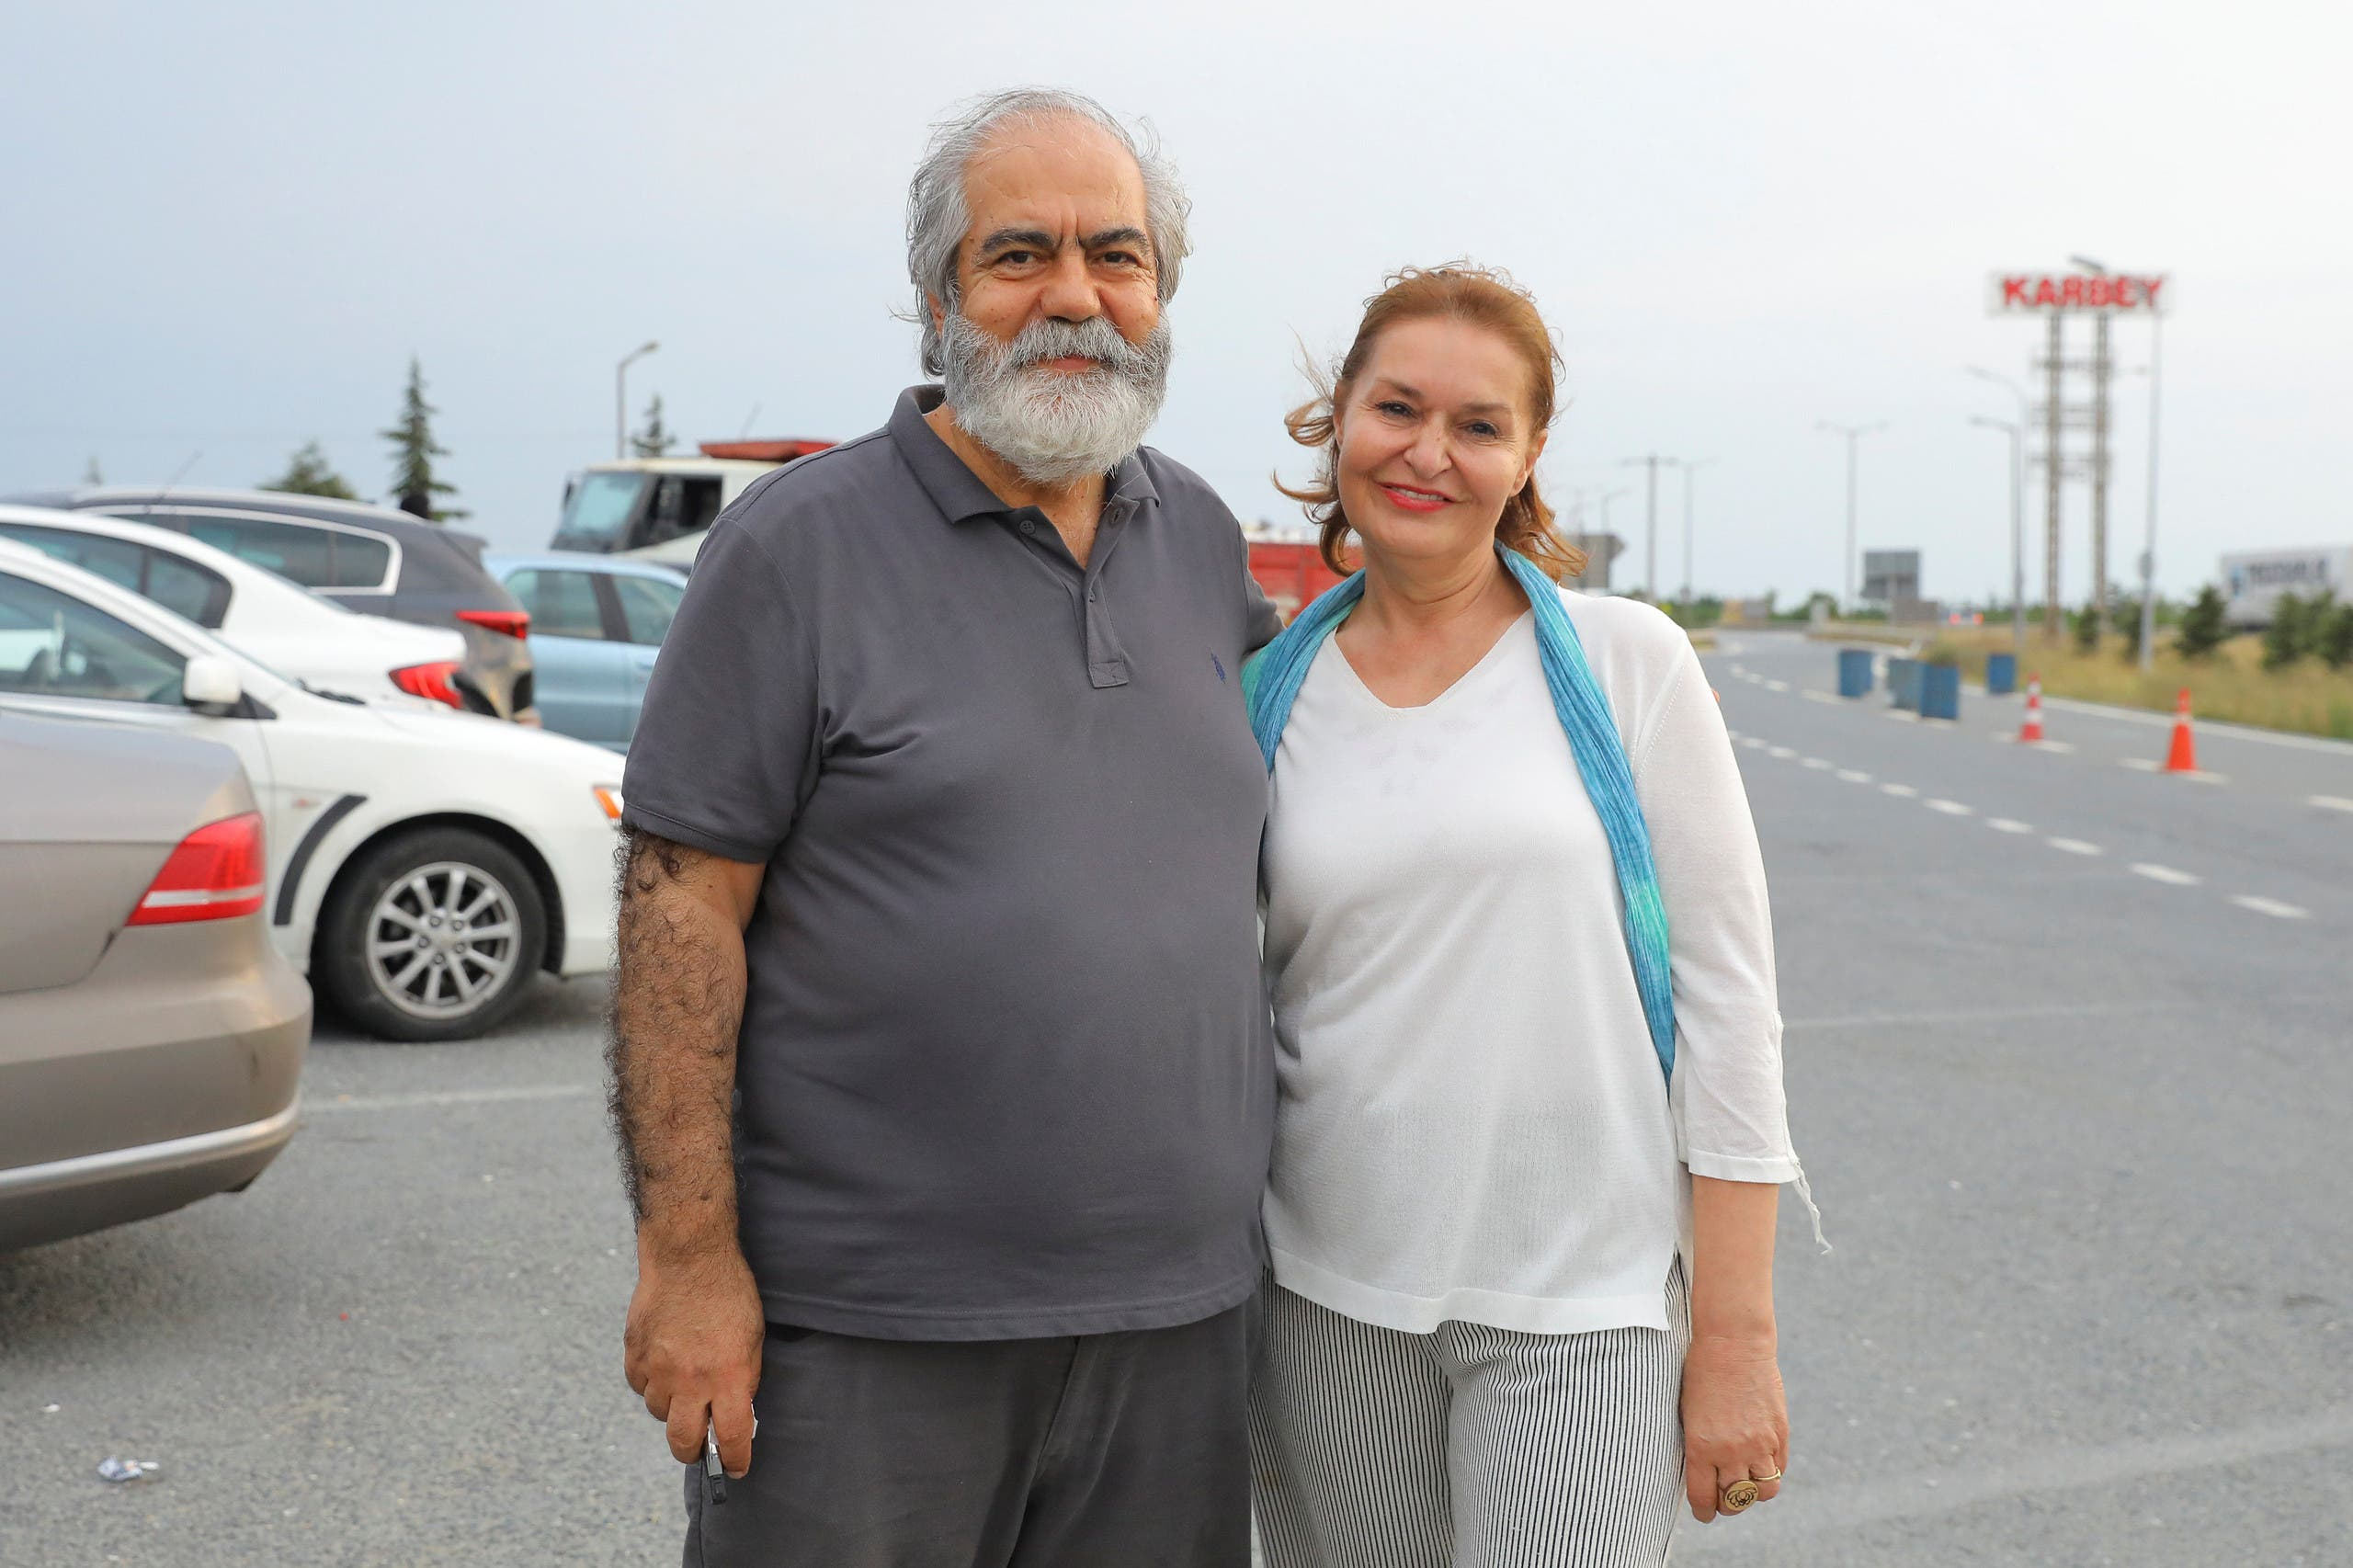 Journalist Mehmet Altan waves to media after being released from the prison in Silivri, near Istanbul, Turkey, June 27, 2018. REUTERS